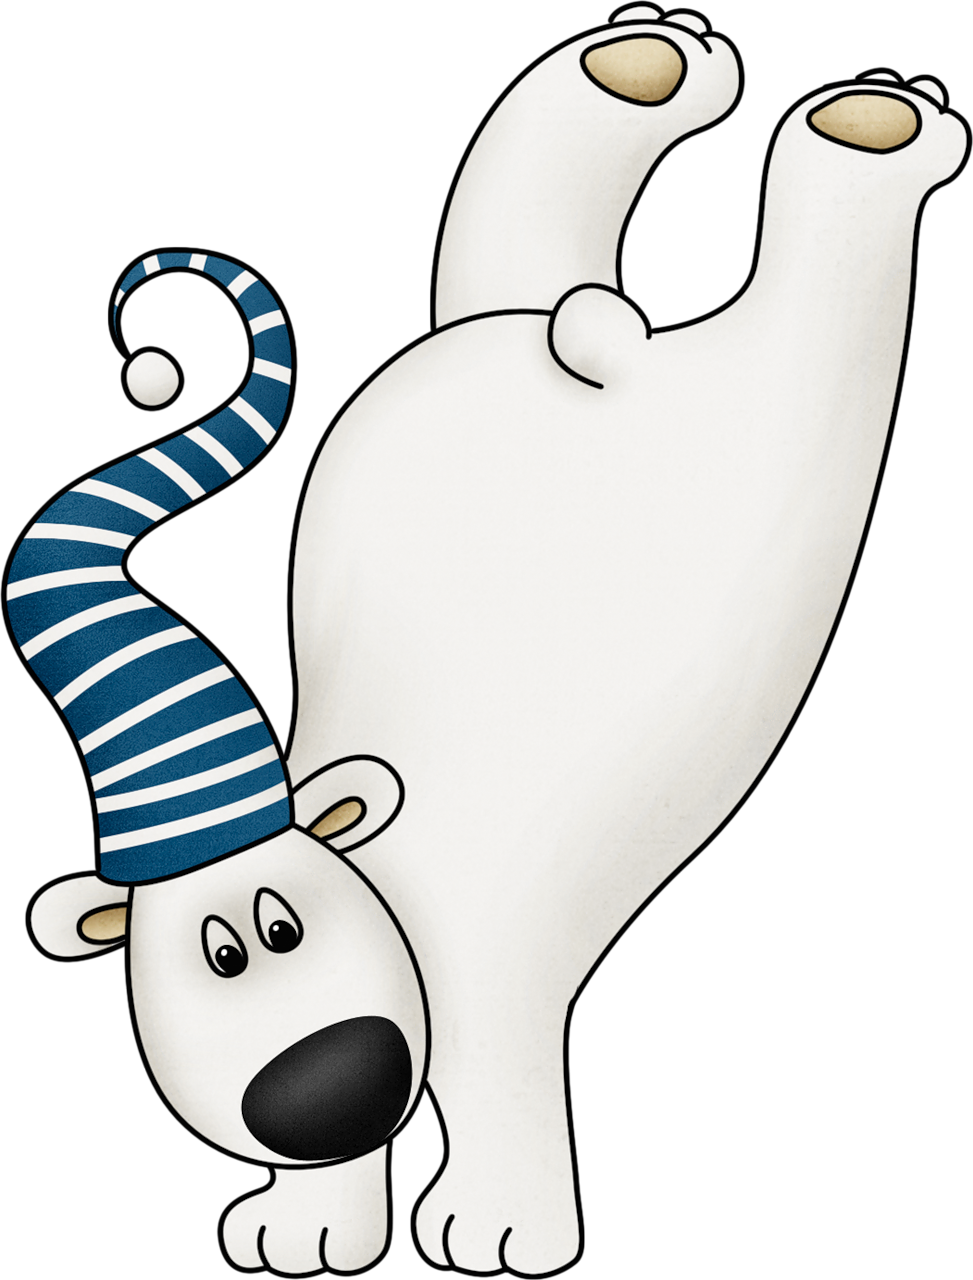 973x1280 Cute Winter Polar Bear Clip Art Clip Art (Christmas)